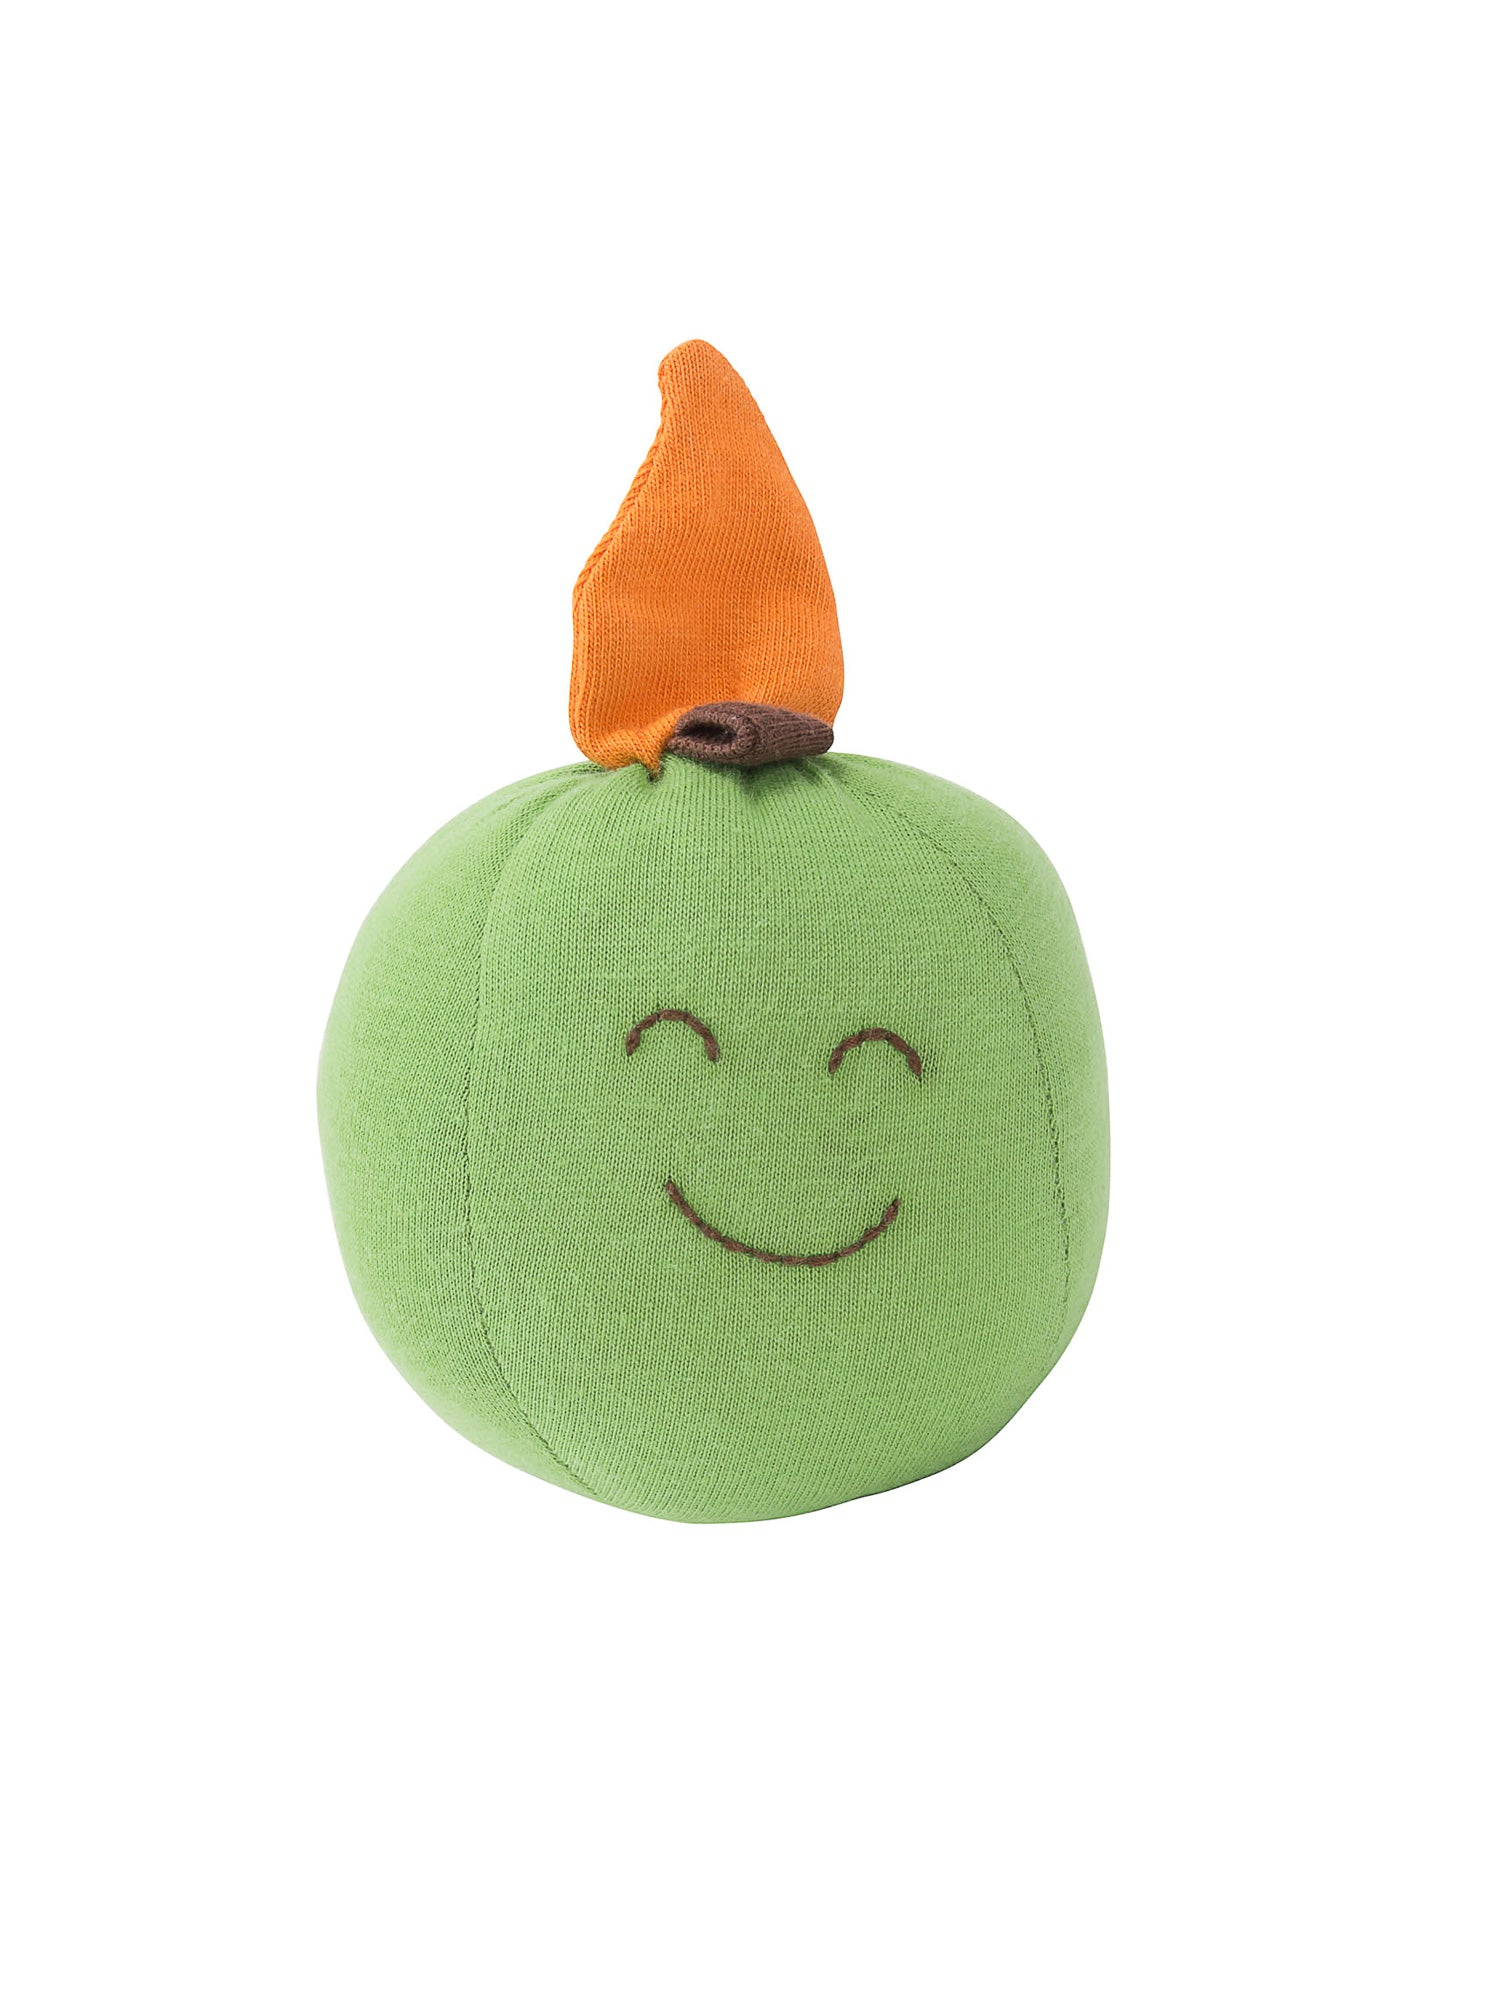 organic-cotton-apple-stuffed-fruit-plush-toy